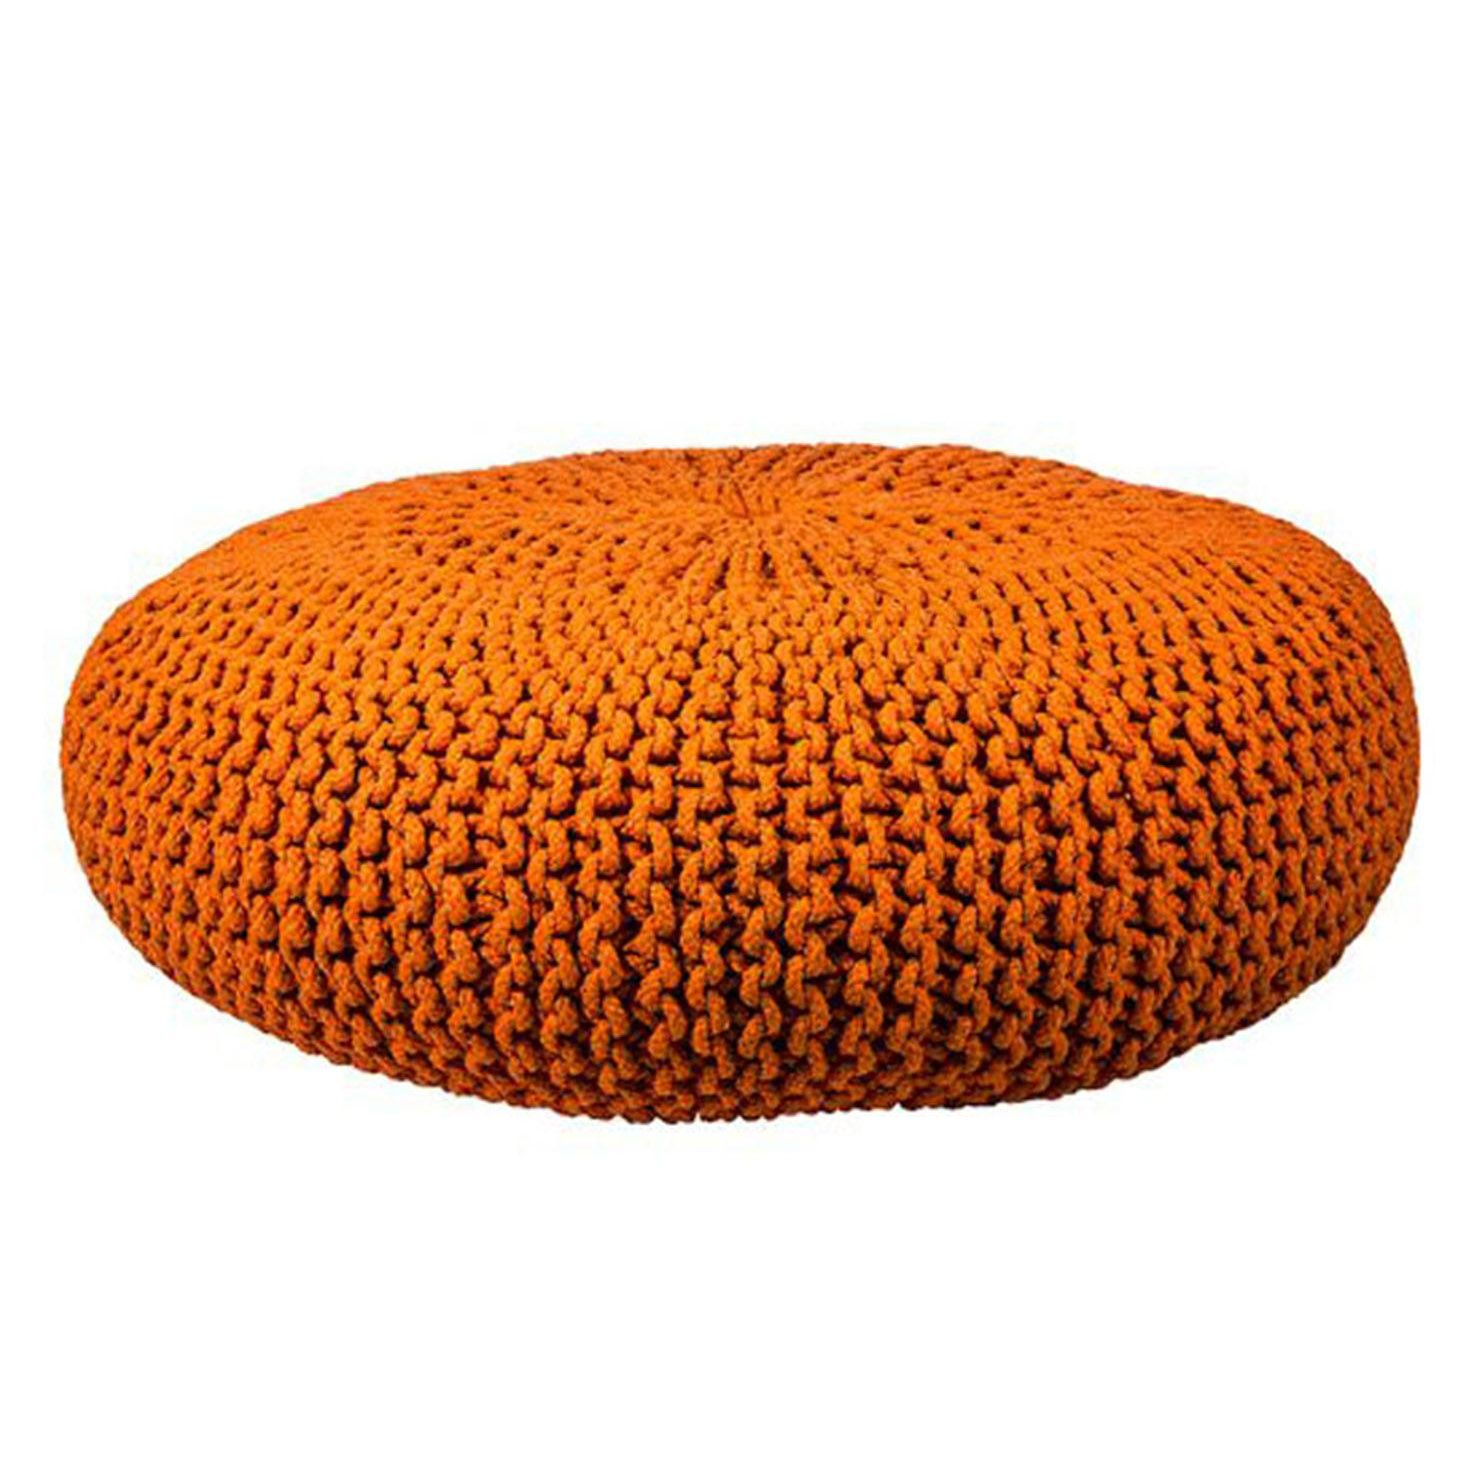 Knitted Pouf, Orange, 85cm | ACHICA